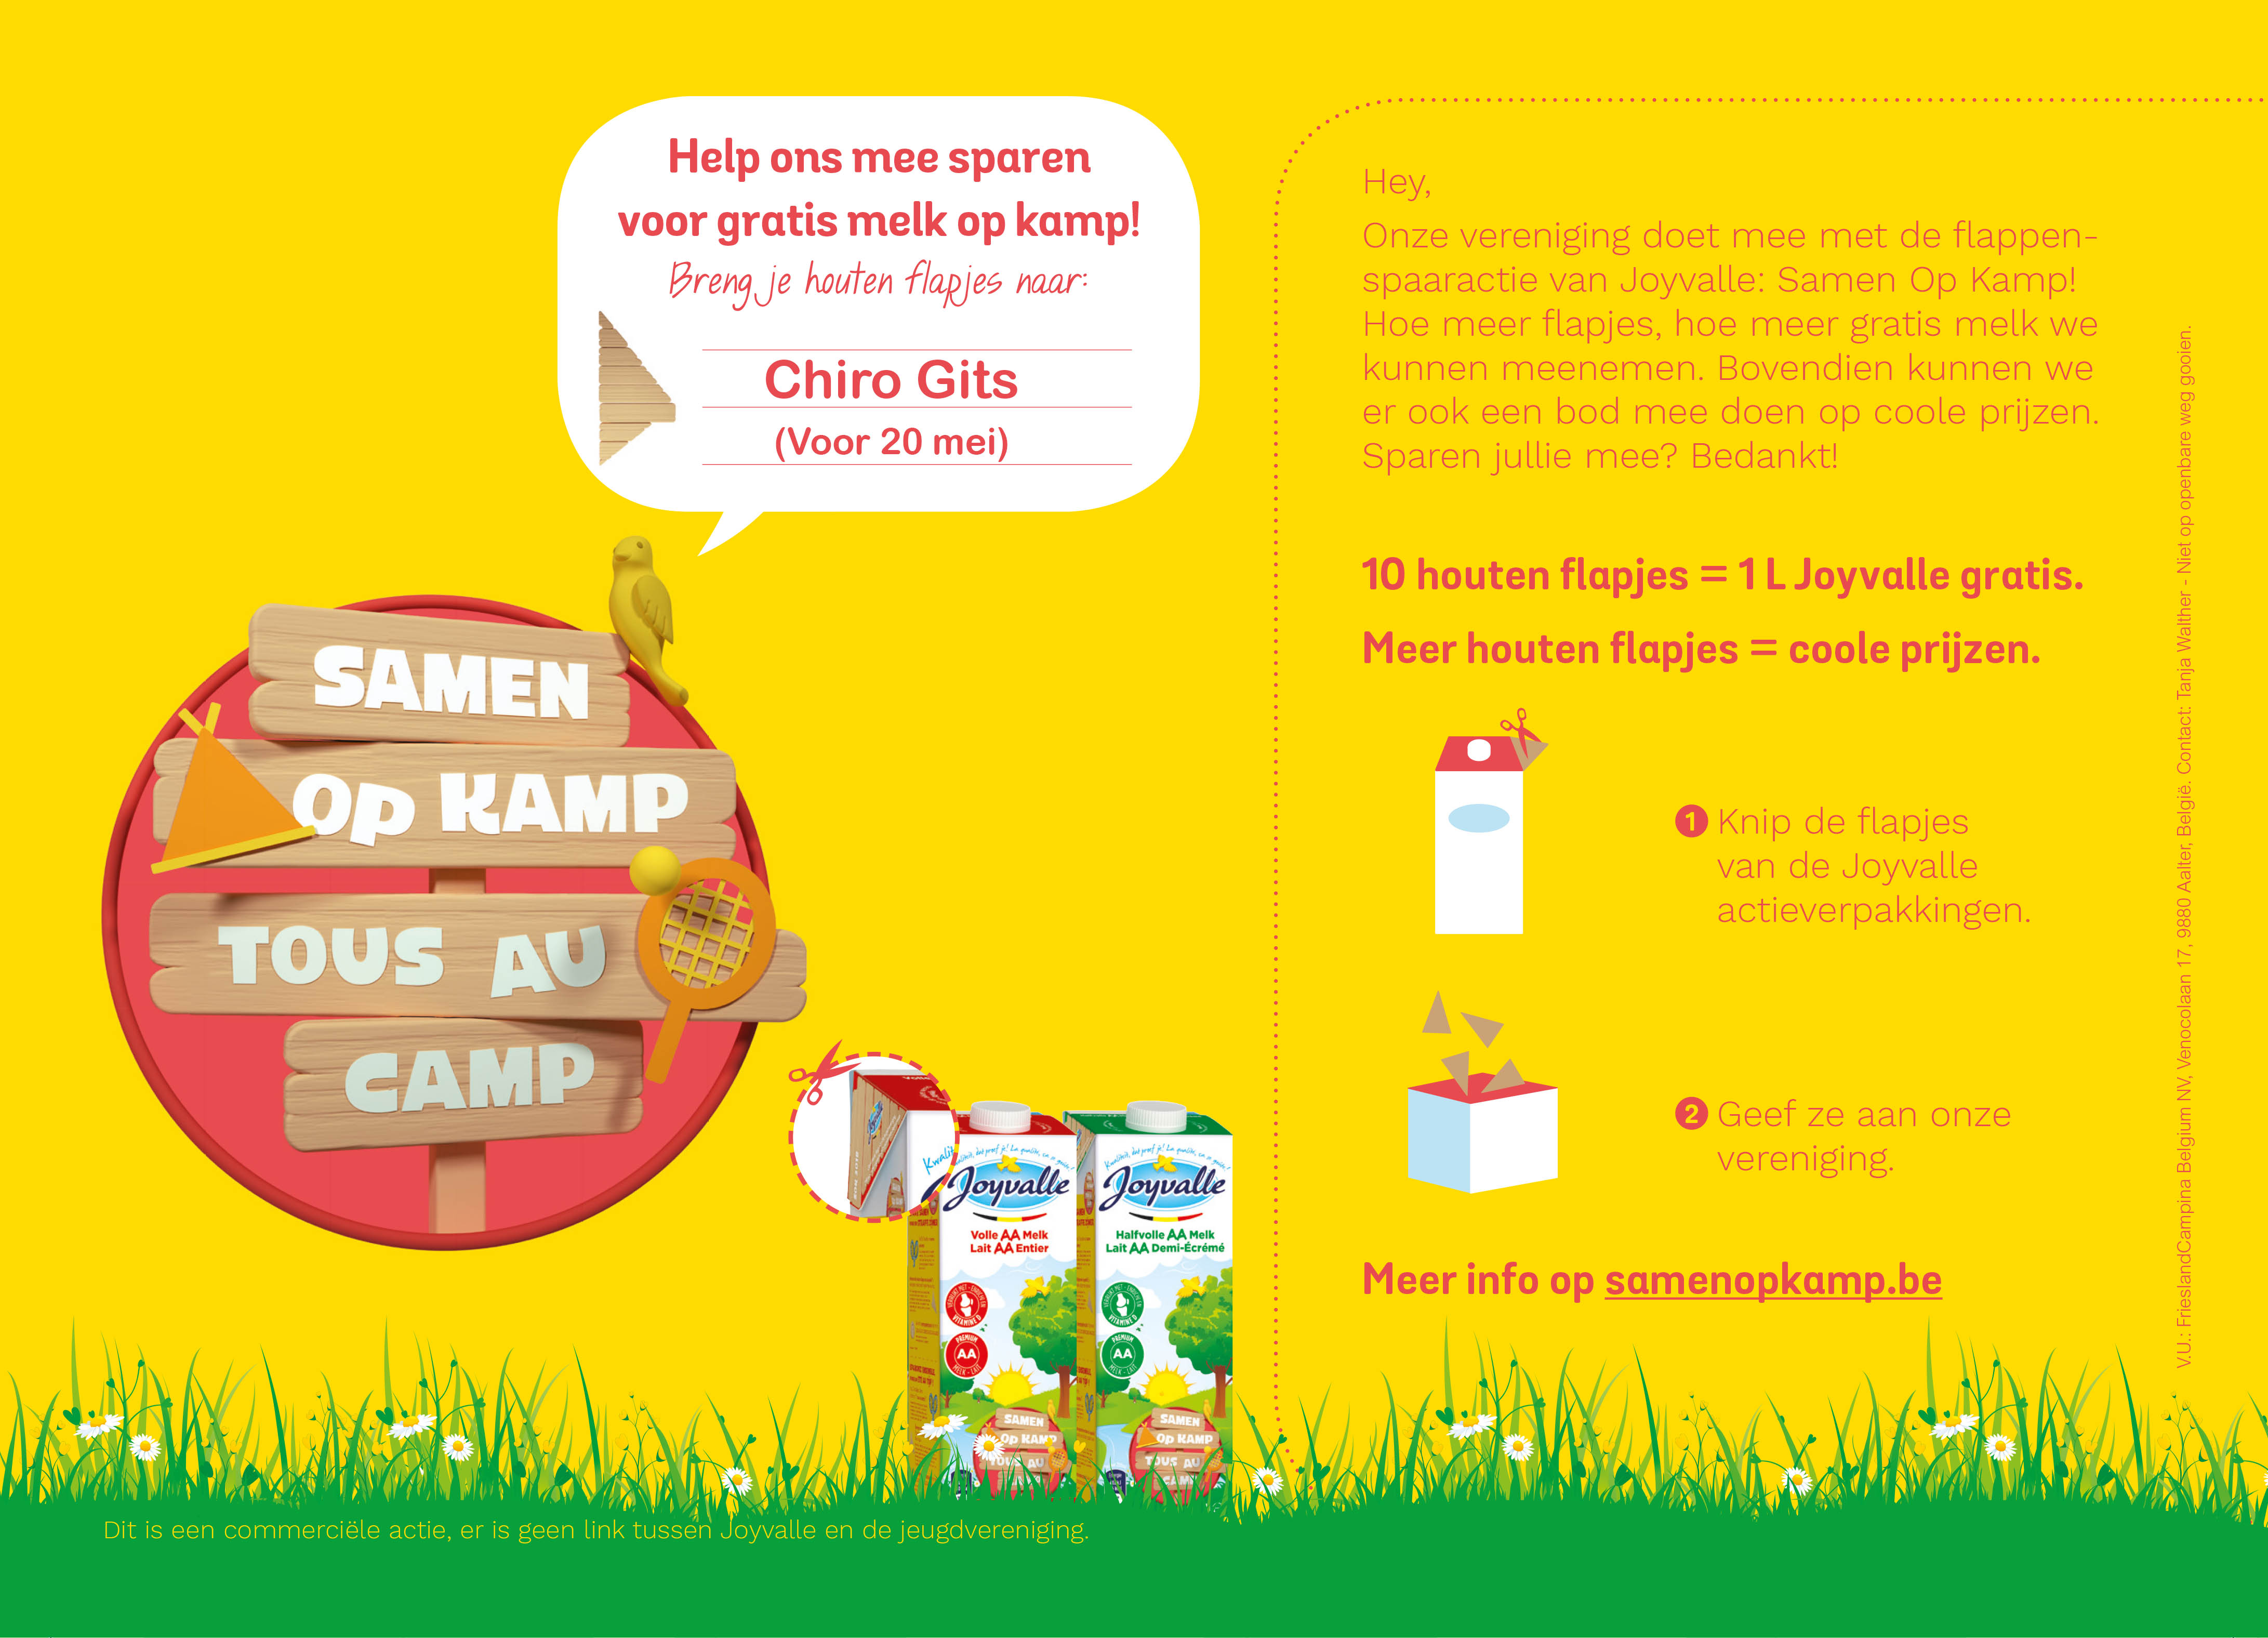 08136_CAM_Samenopkamp_Flyer_A6-New.indd